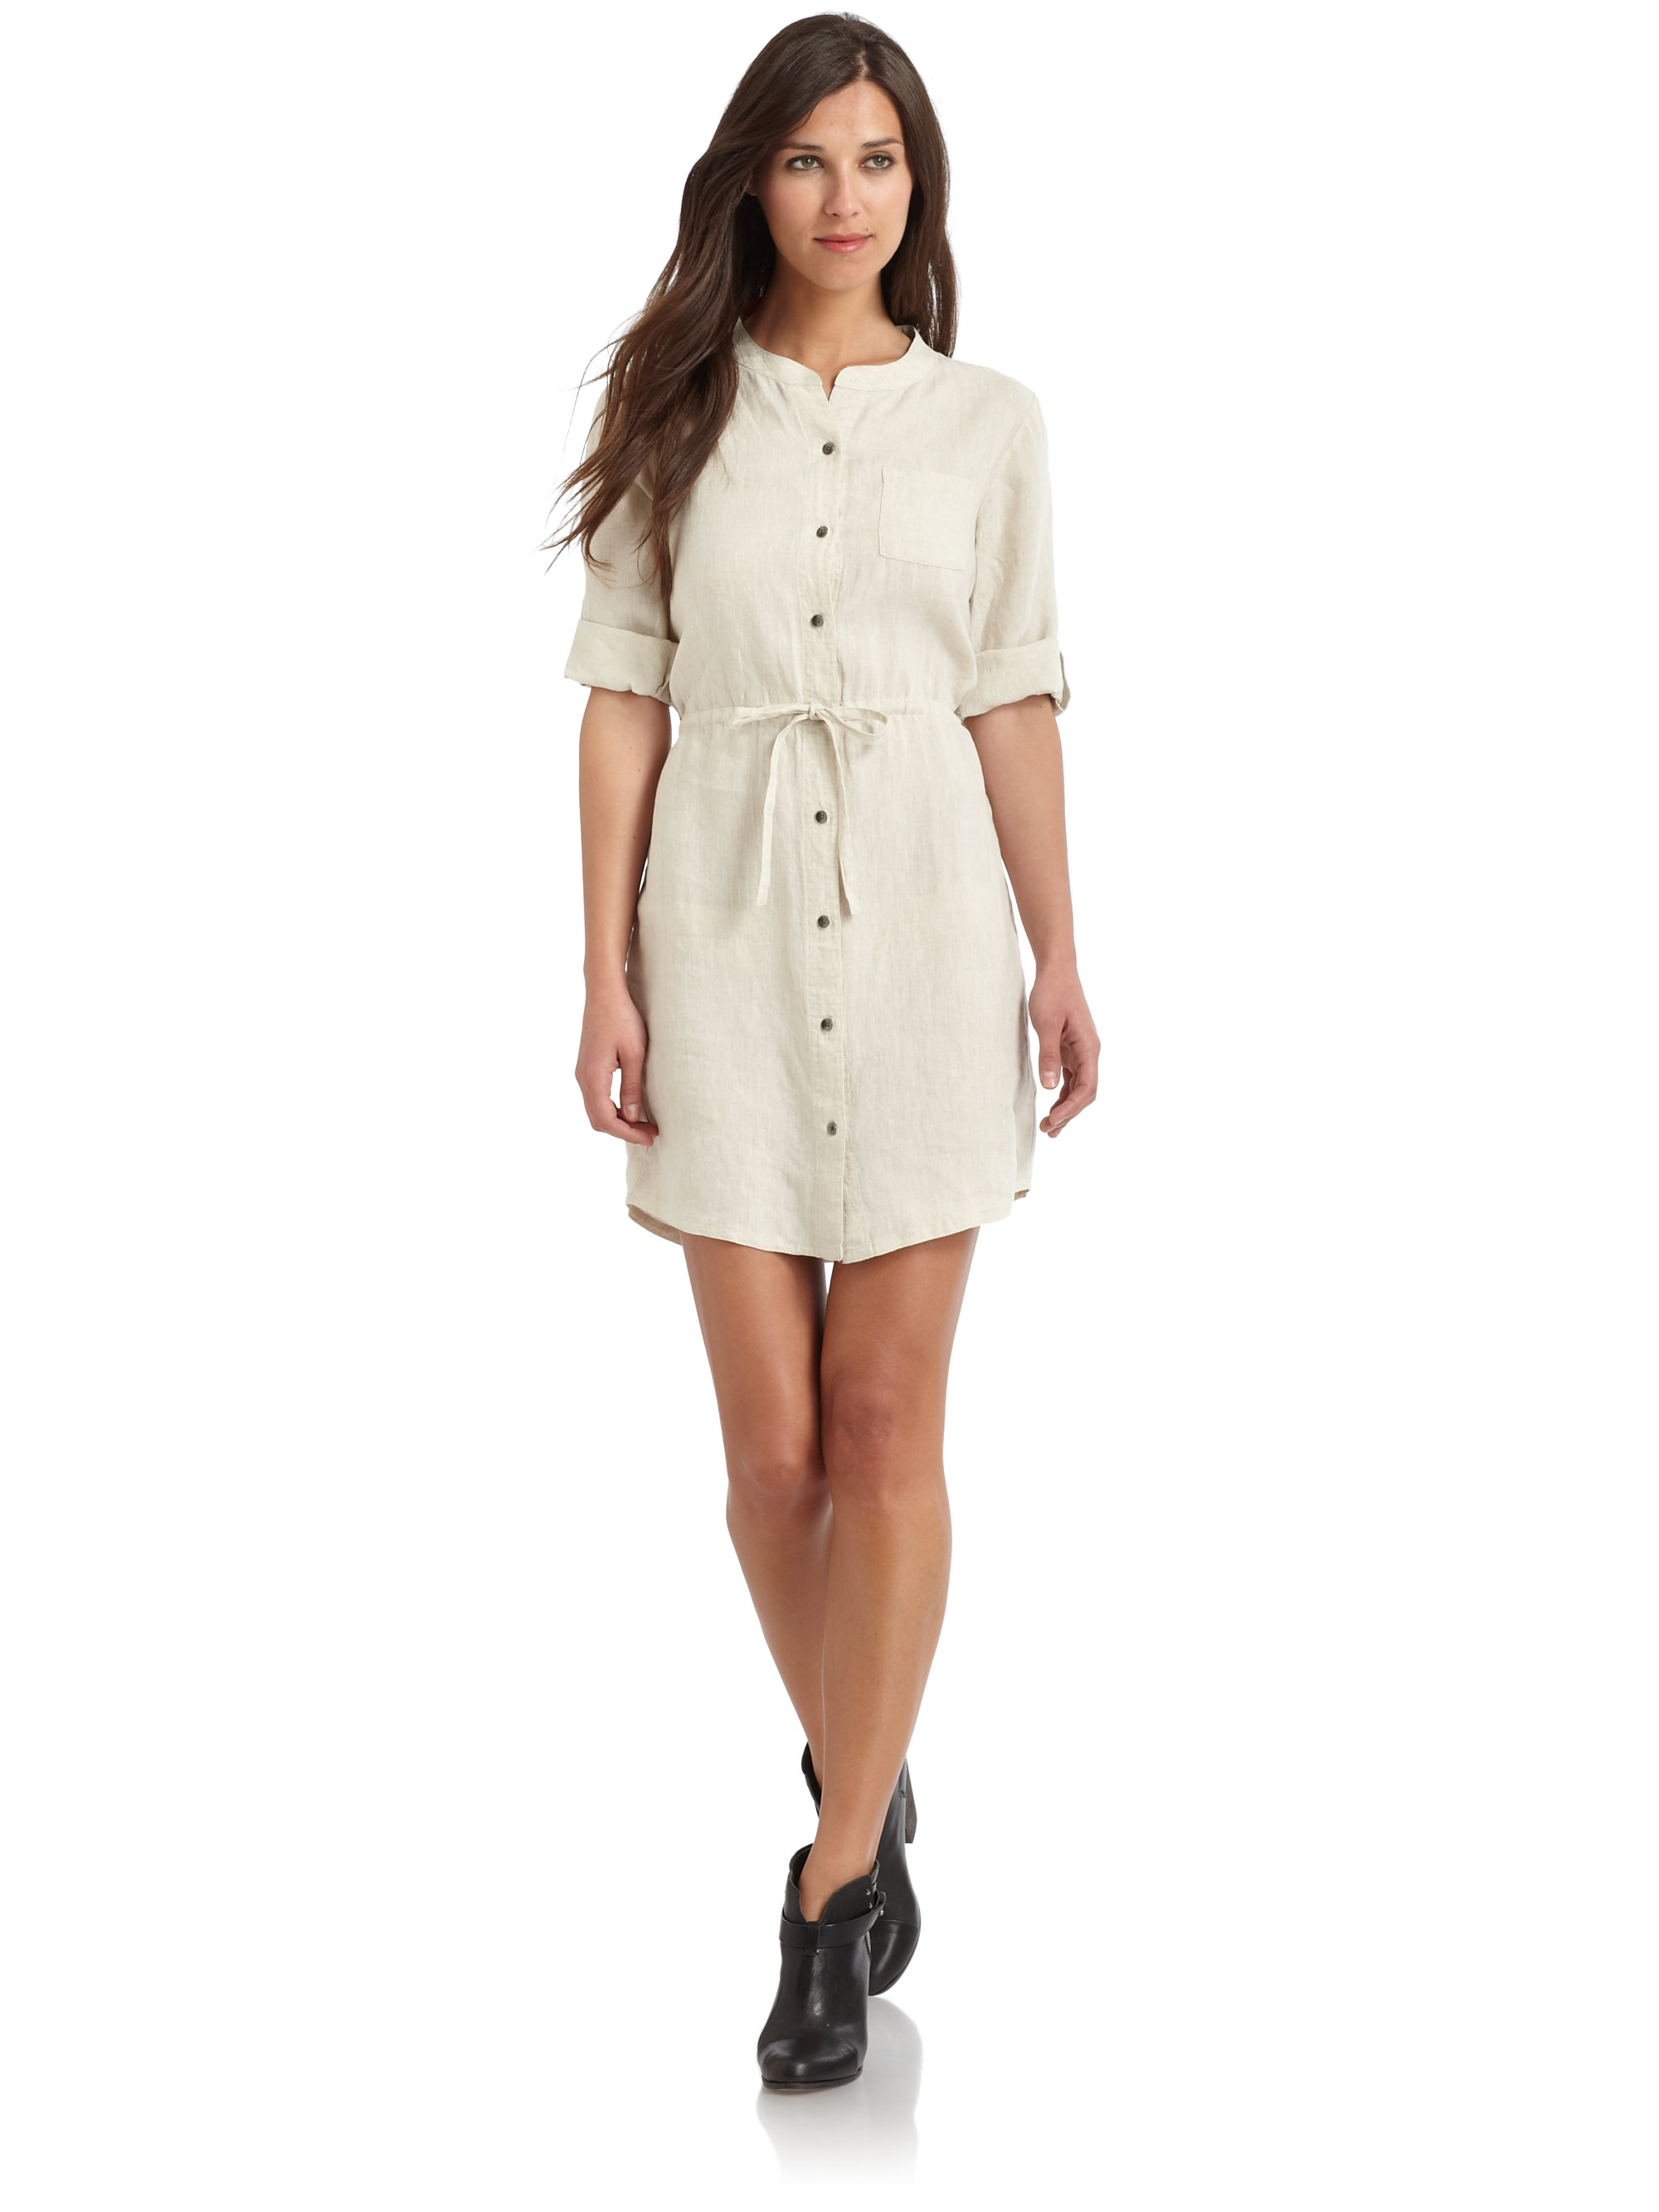 3ac0429e5f7 Gallery. Previously sold at  Saks Fifth Avenue · Women s Blue Dresses  Women s White Linen ...